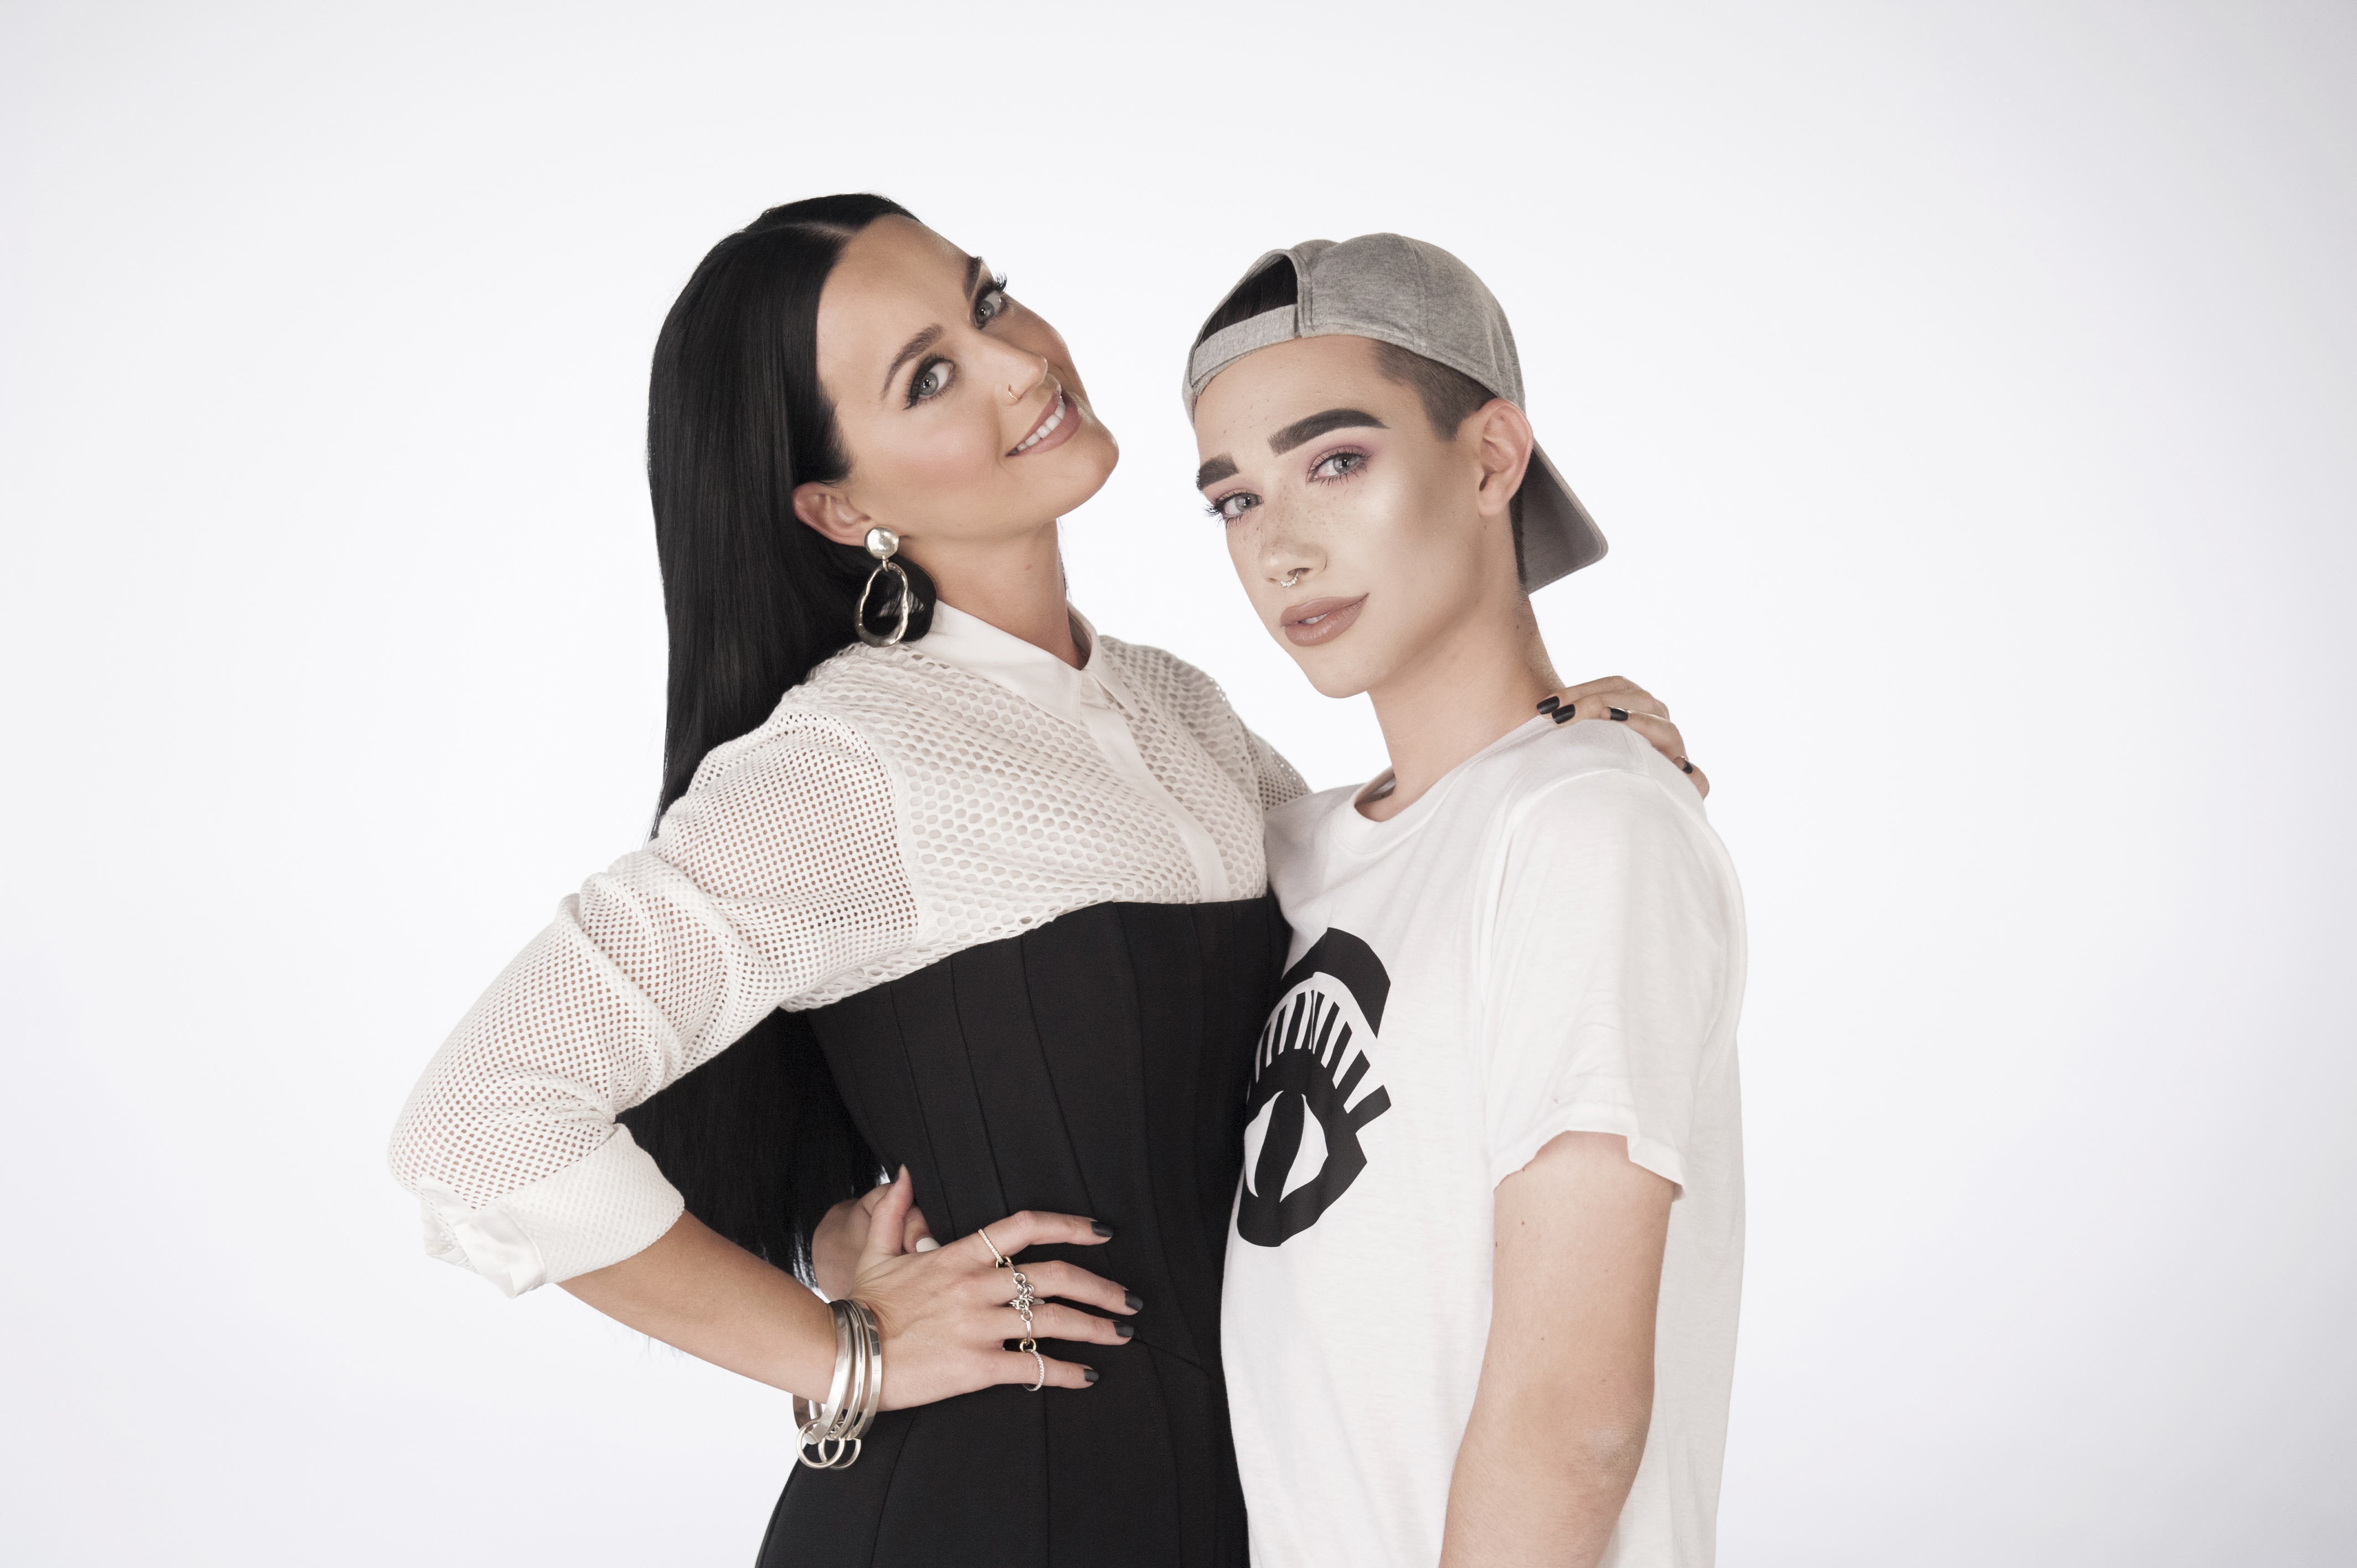 Coty's CoverGirl has named social media star James Charles to serve as brand's first-ever male CoverGirl.